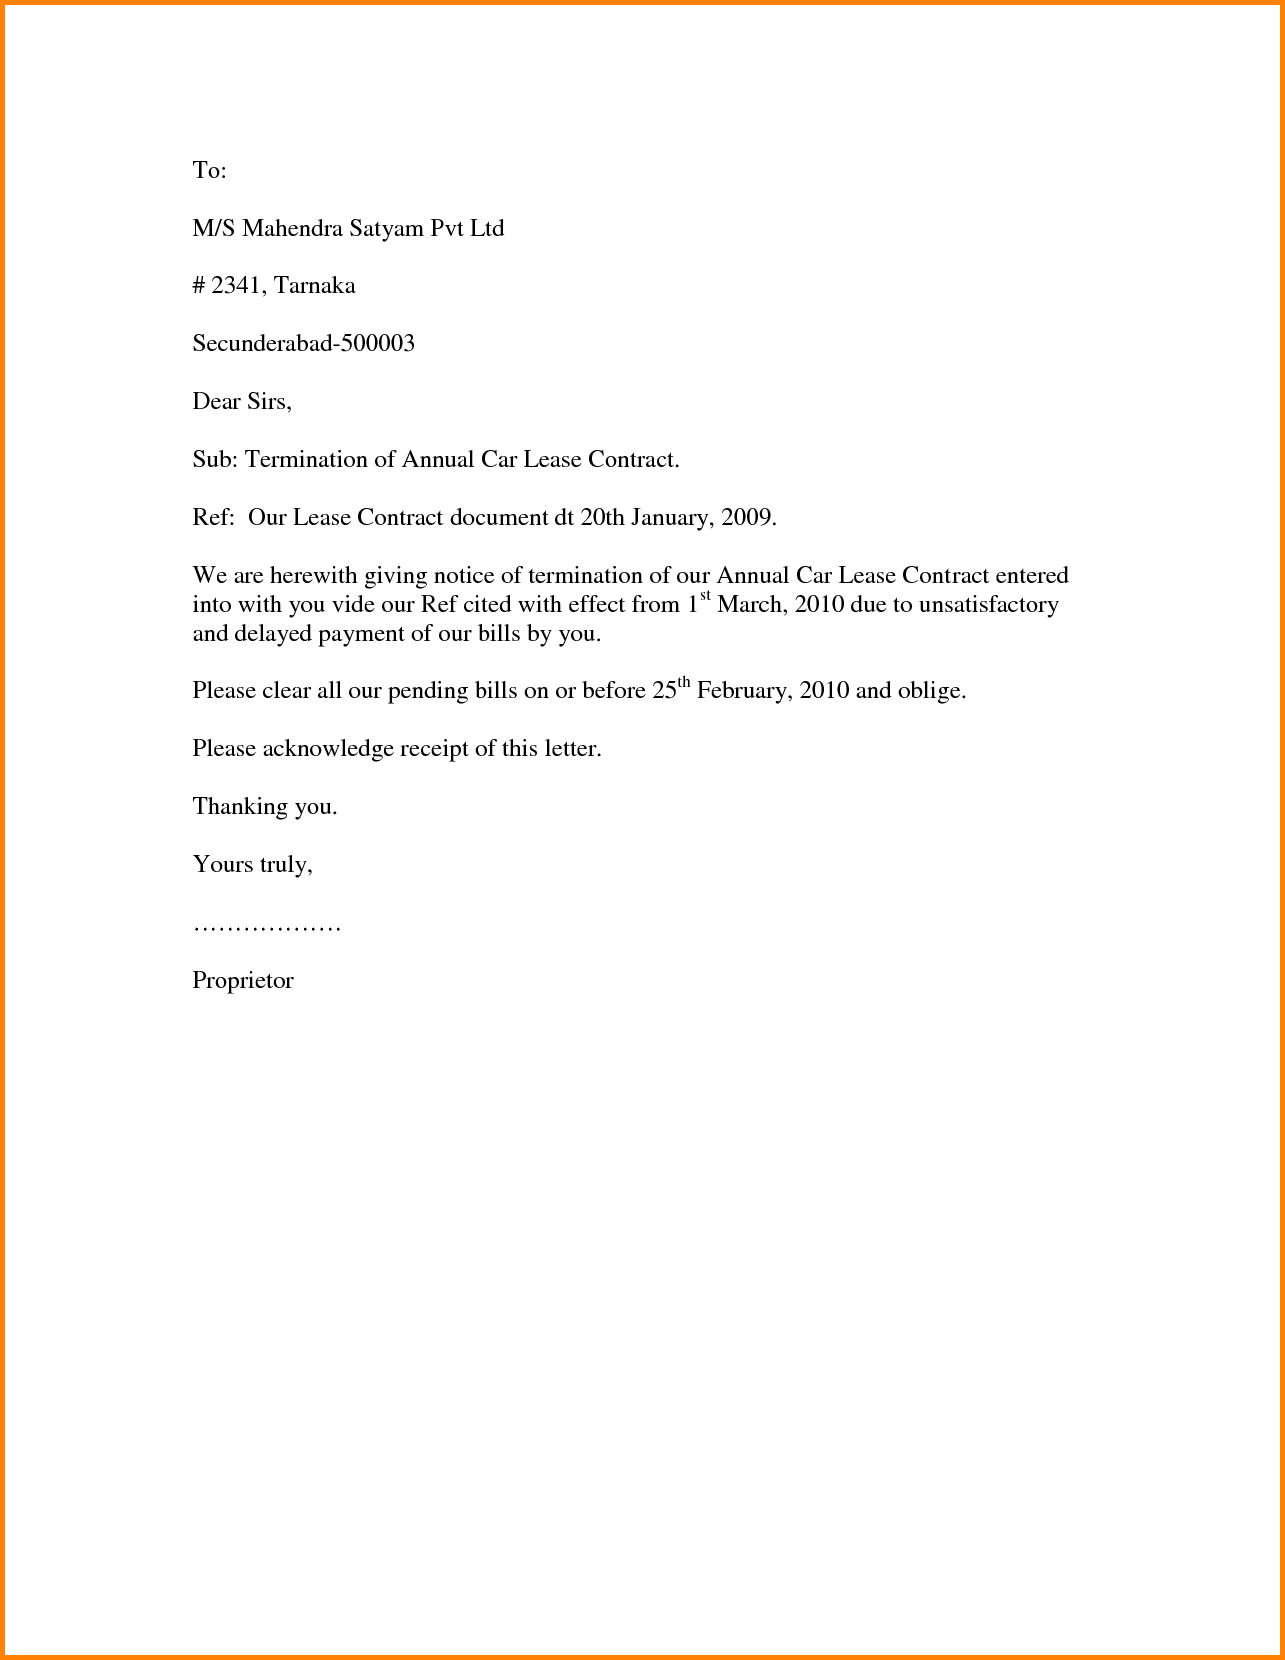 Cancel Service Contract Letter Template - How to End Letters How to End A Resignation Letter Fancy Resume How